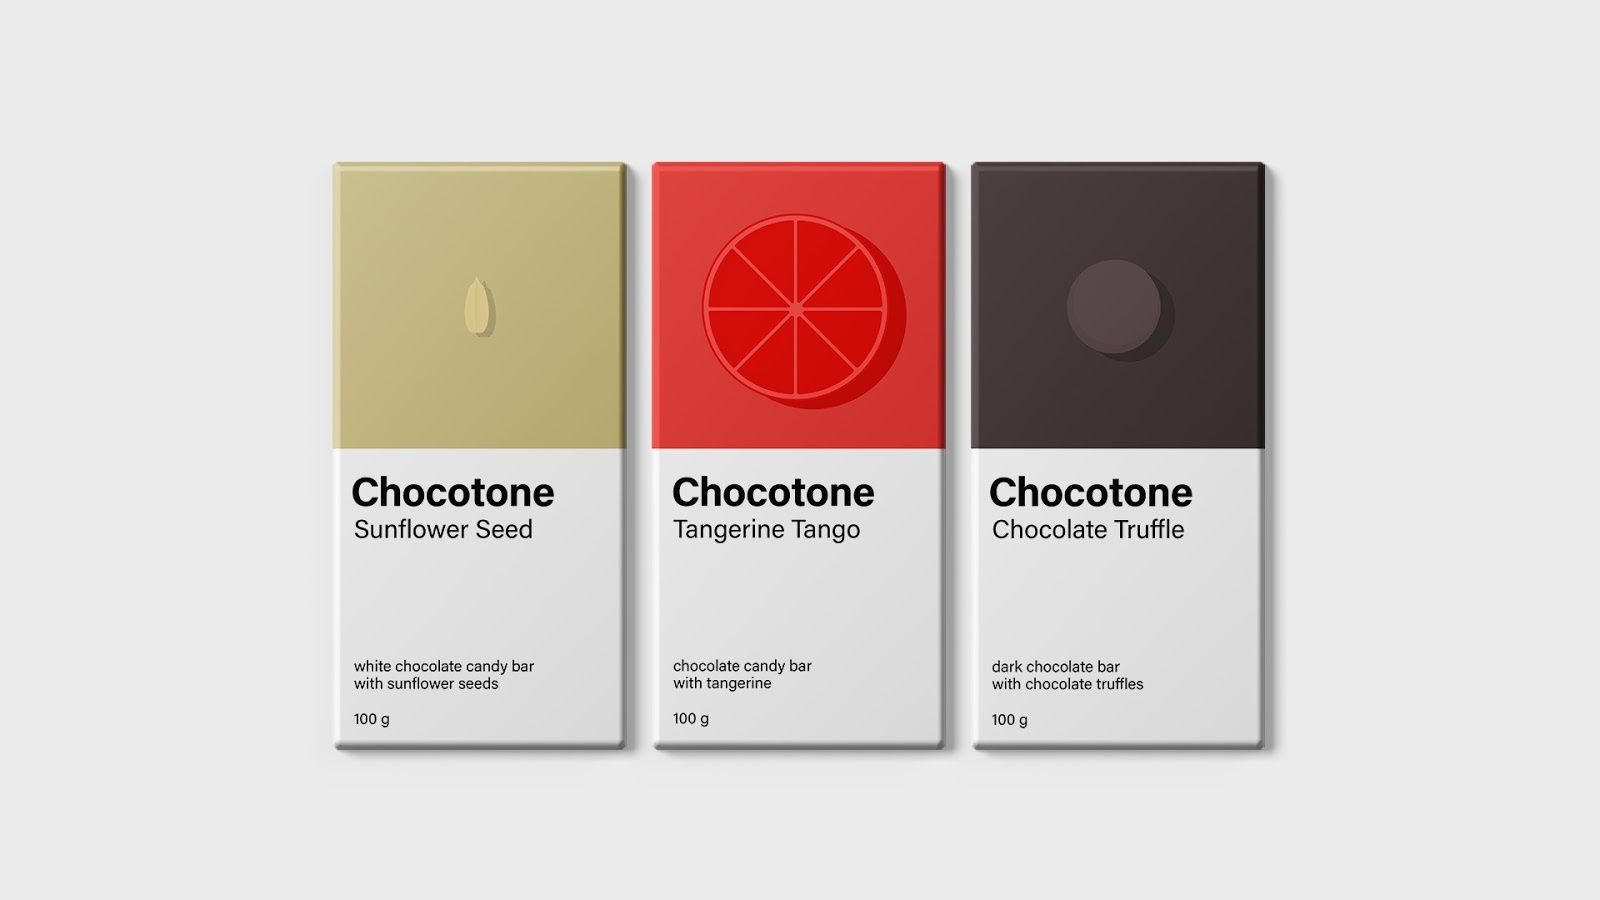 Chocotone (chocolat) I Projet étudiant : Albina Safina (British Higher School of Art and Design), Moscou, Russie (octobre 2018)